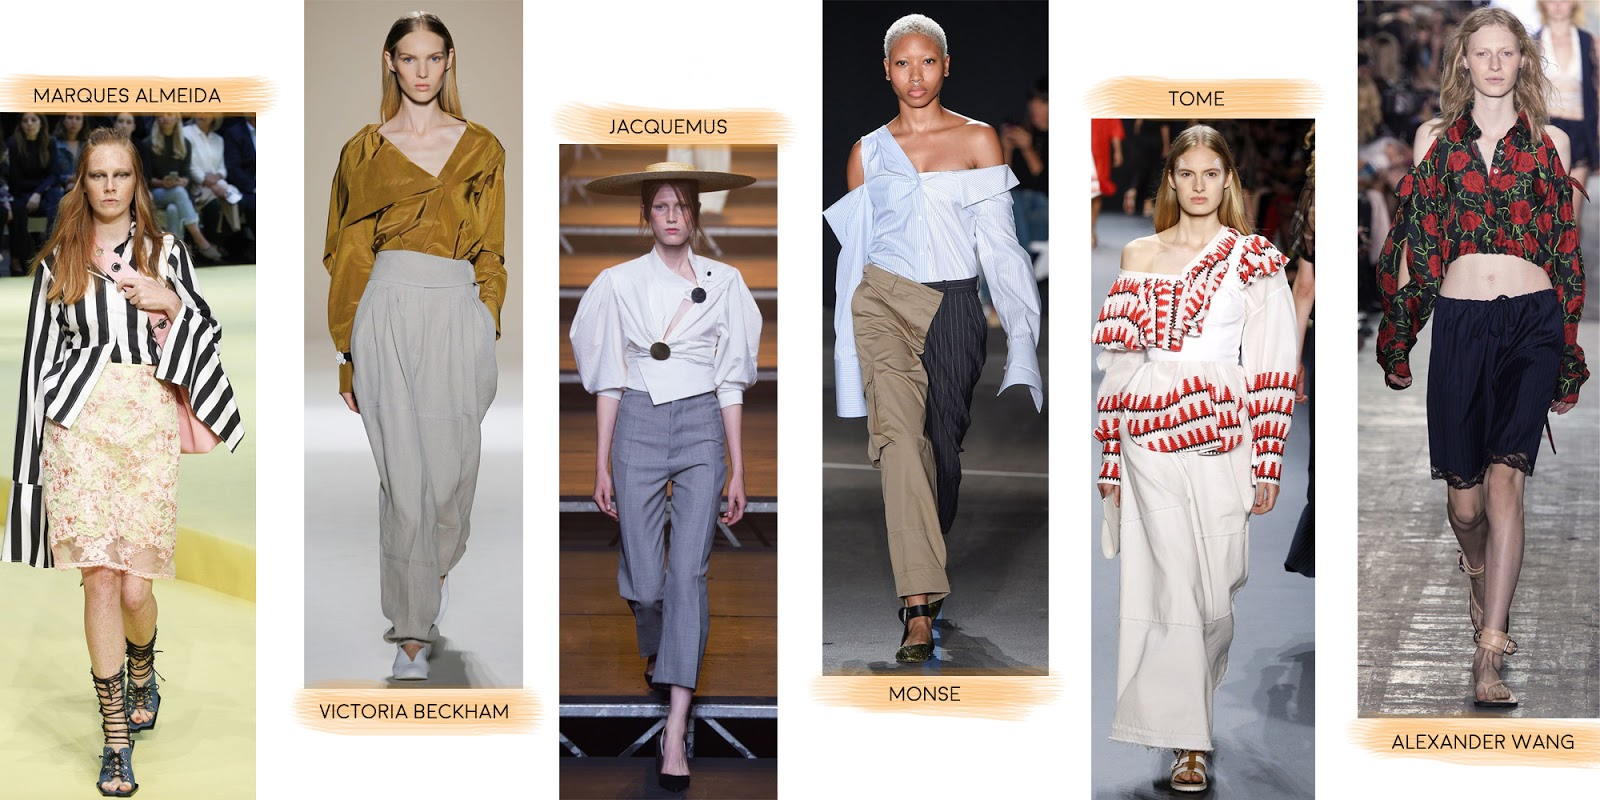 Modern deconstructed shirts as seen on the catwalk